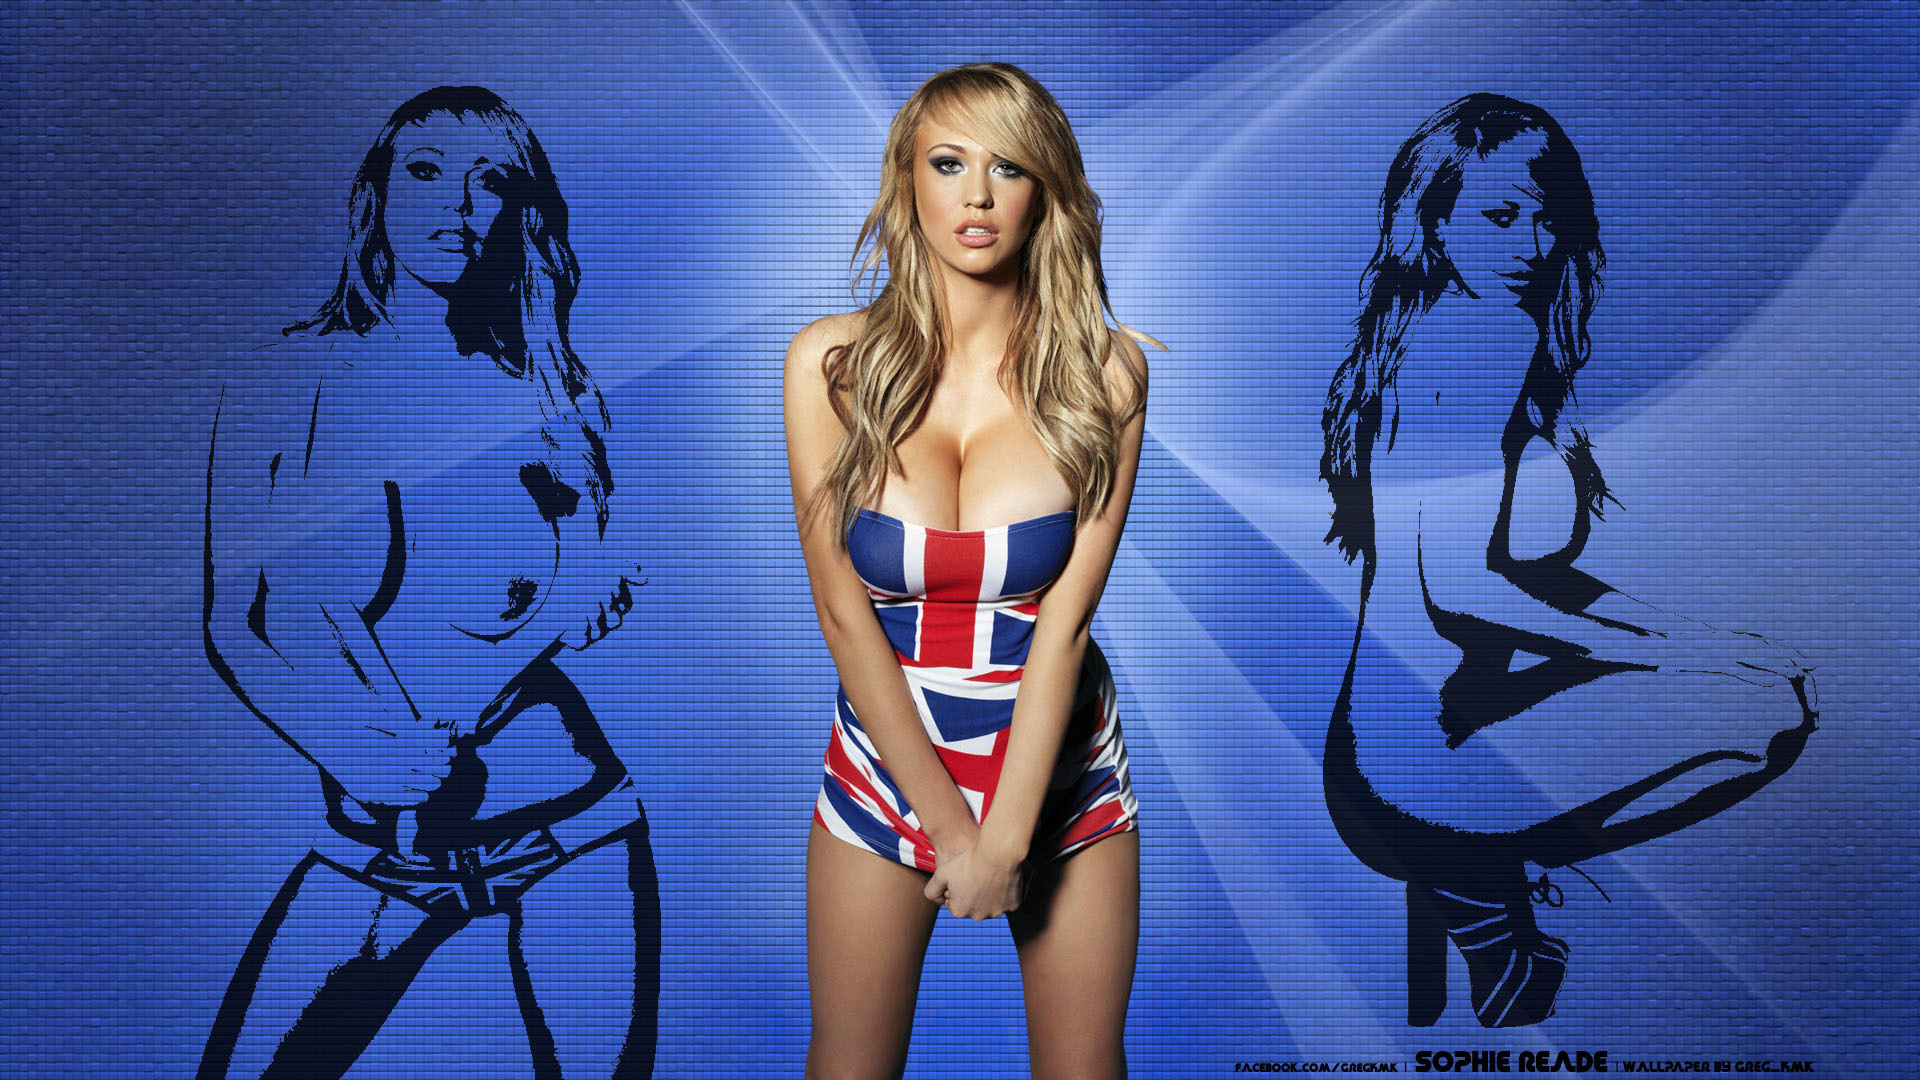 Sophie Reade Wallpapers Hd